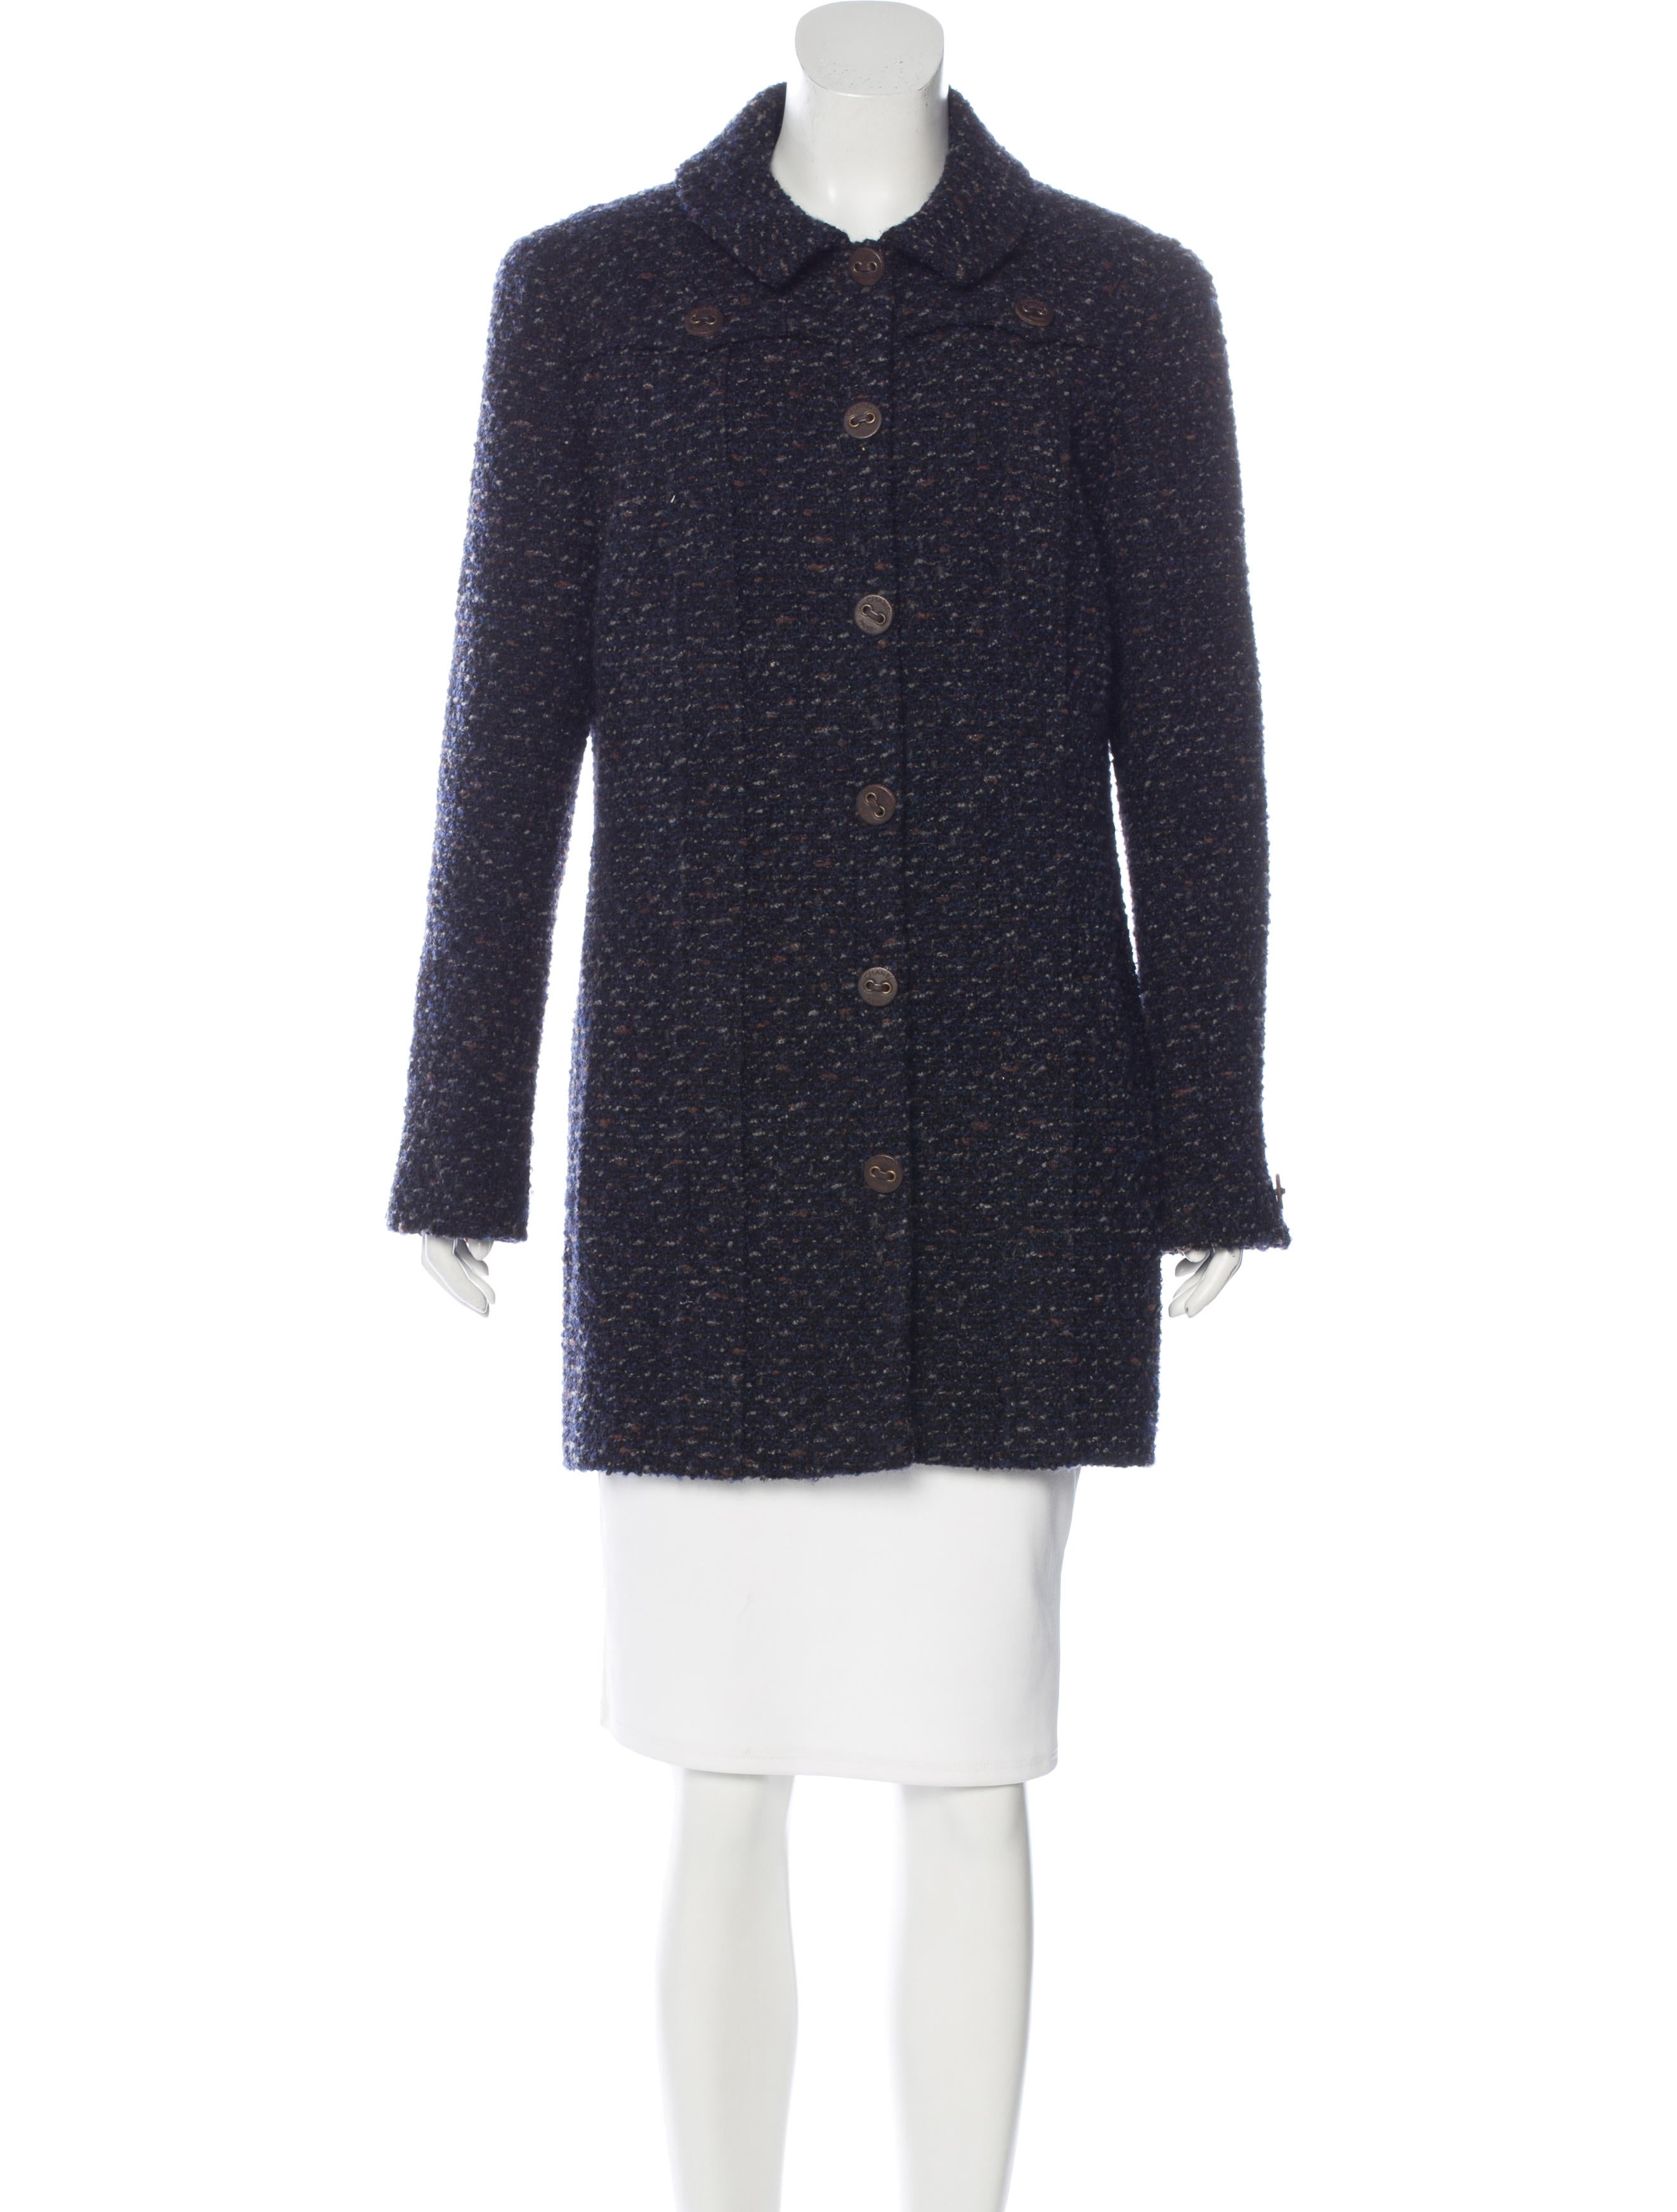 Shop bestselling Womens Bouclé Jackets: 39 brands 65 items Many styles & colors up to −55% on sale» Browse now at Stylight!